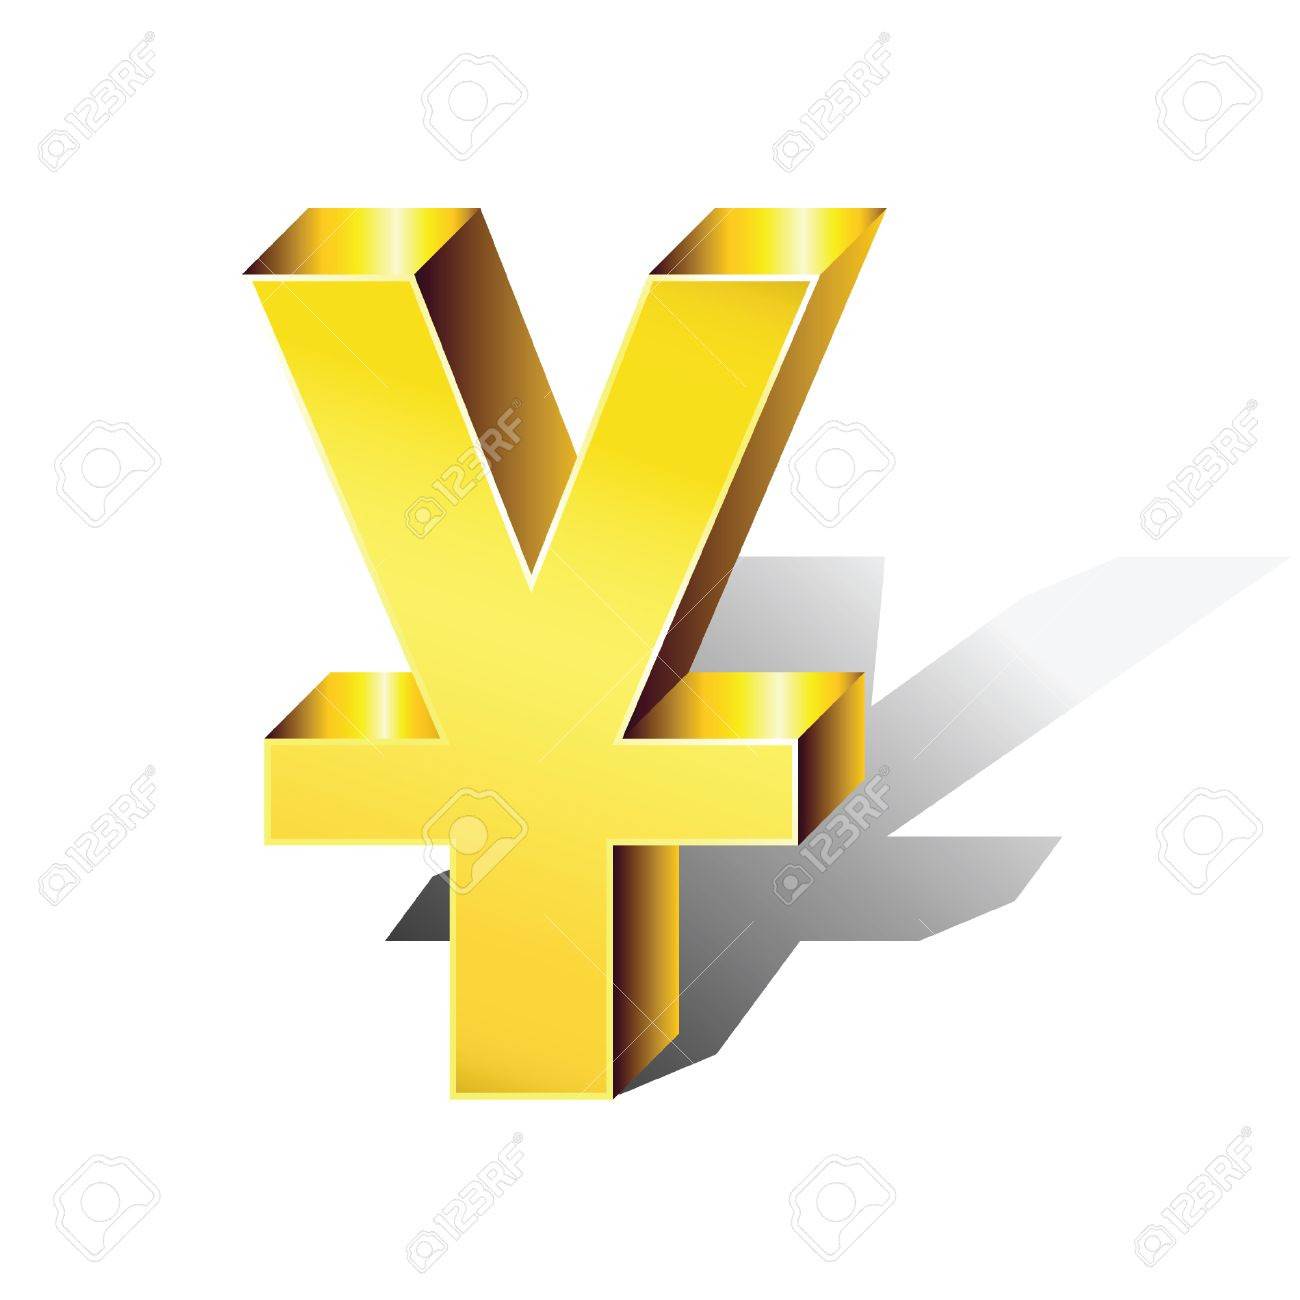 The symbol of the chinese currency yuan in color and in volume the symbol of the chinese currency yuan in color and in volume stock vector biocorpaavc